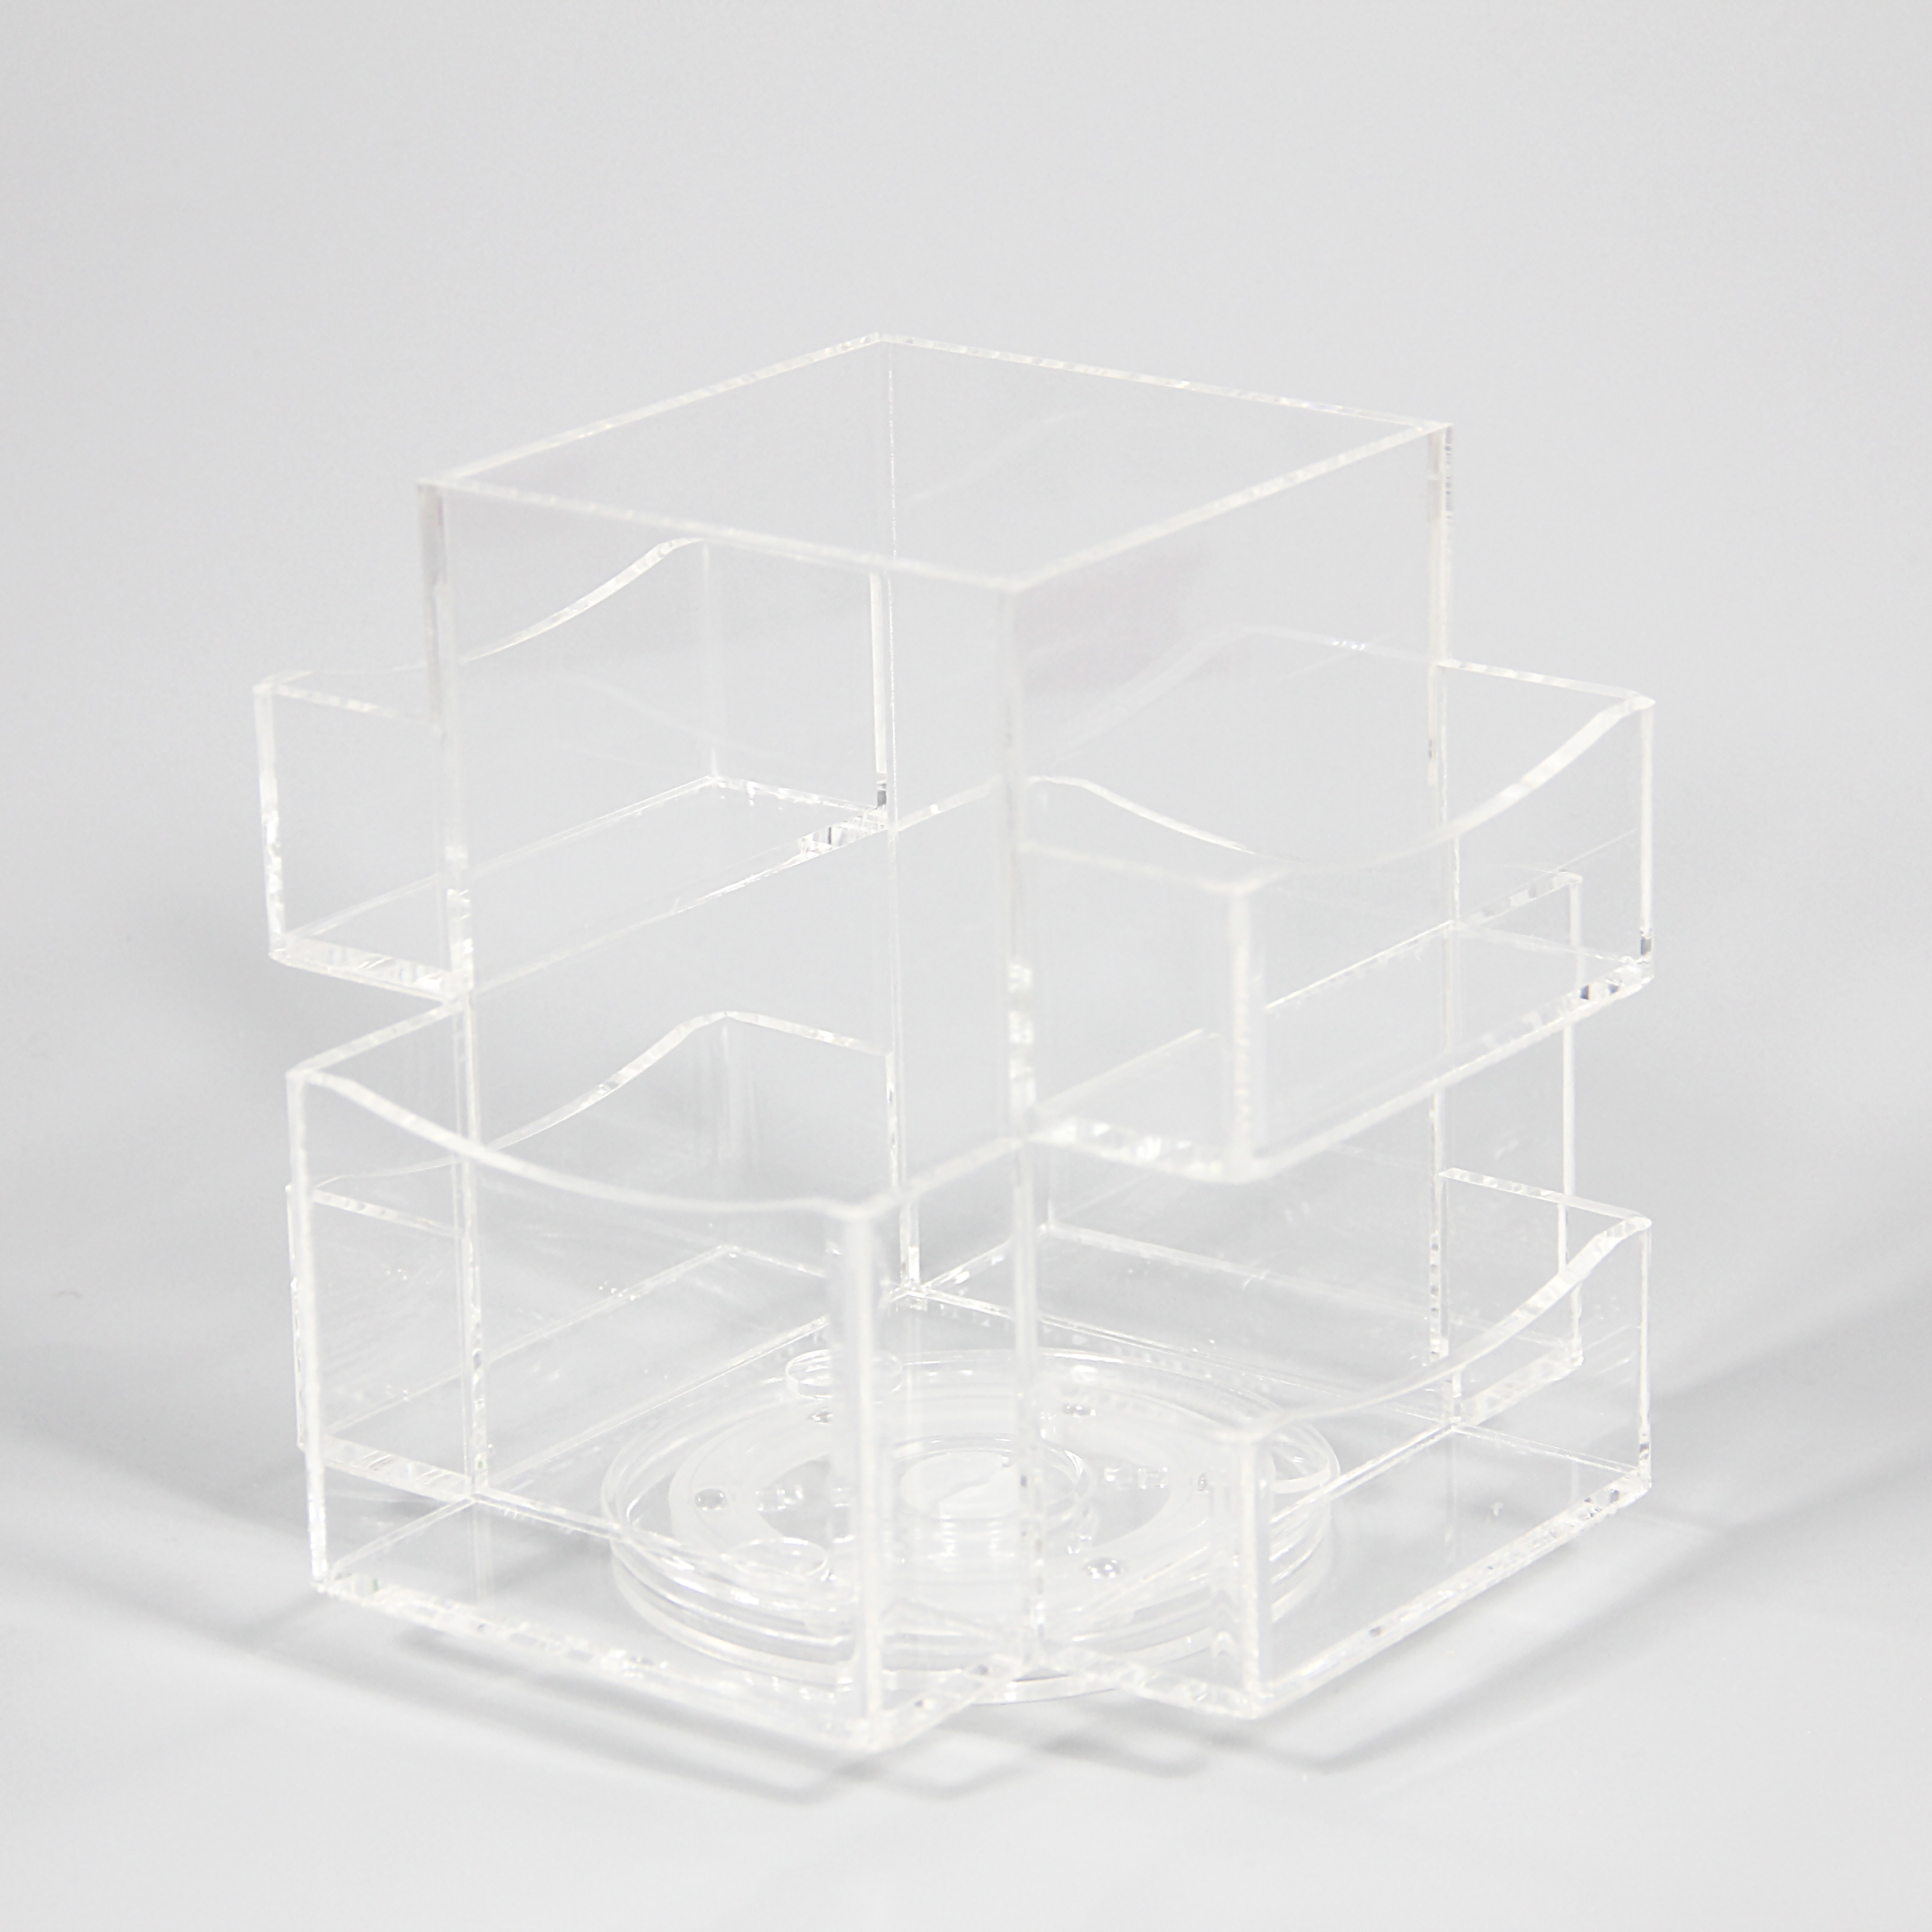 Multi-function Plexiglass Acrylic Plastic Spinning Bathroom Desk Accessories Organizer Set